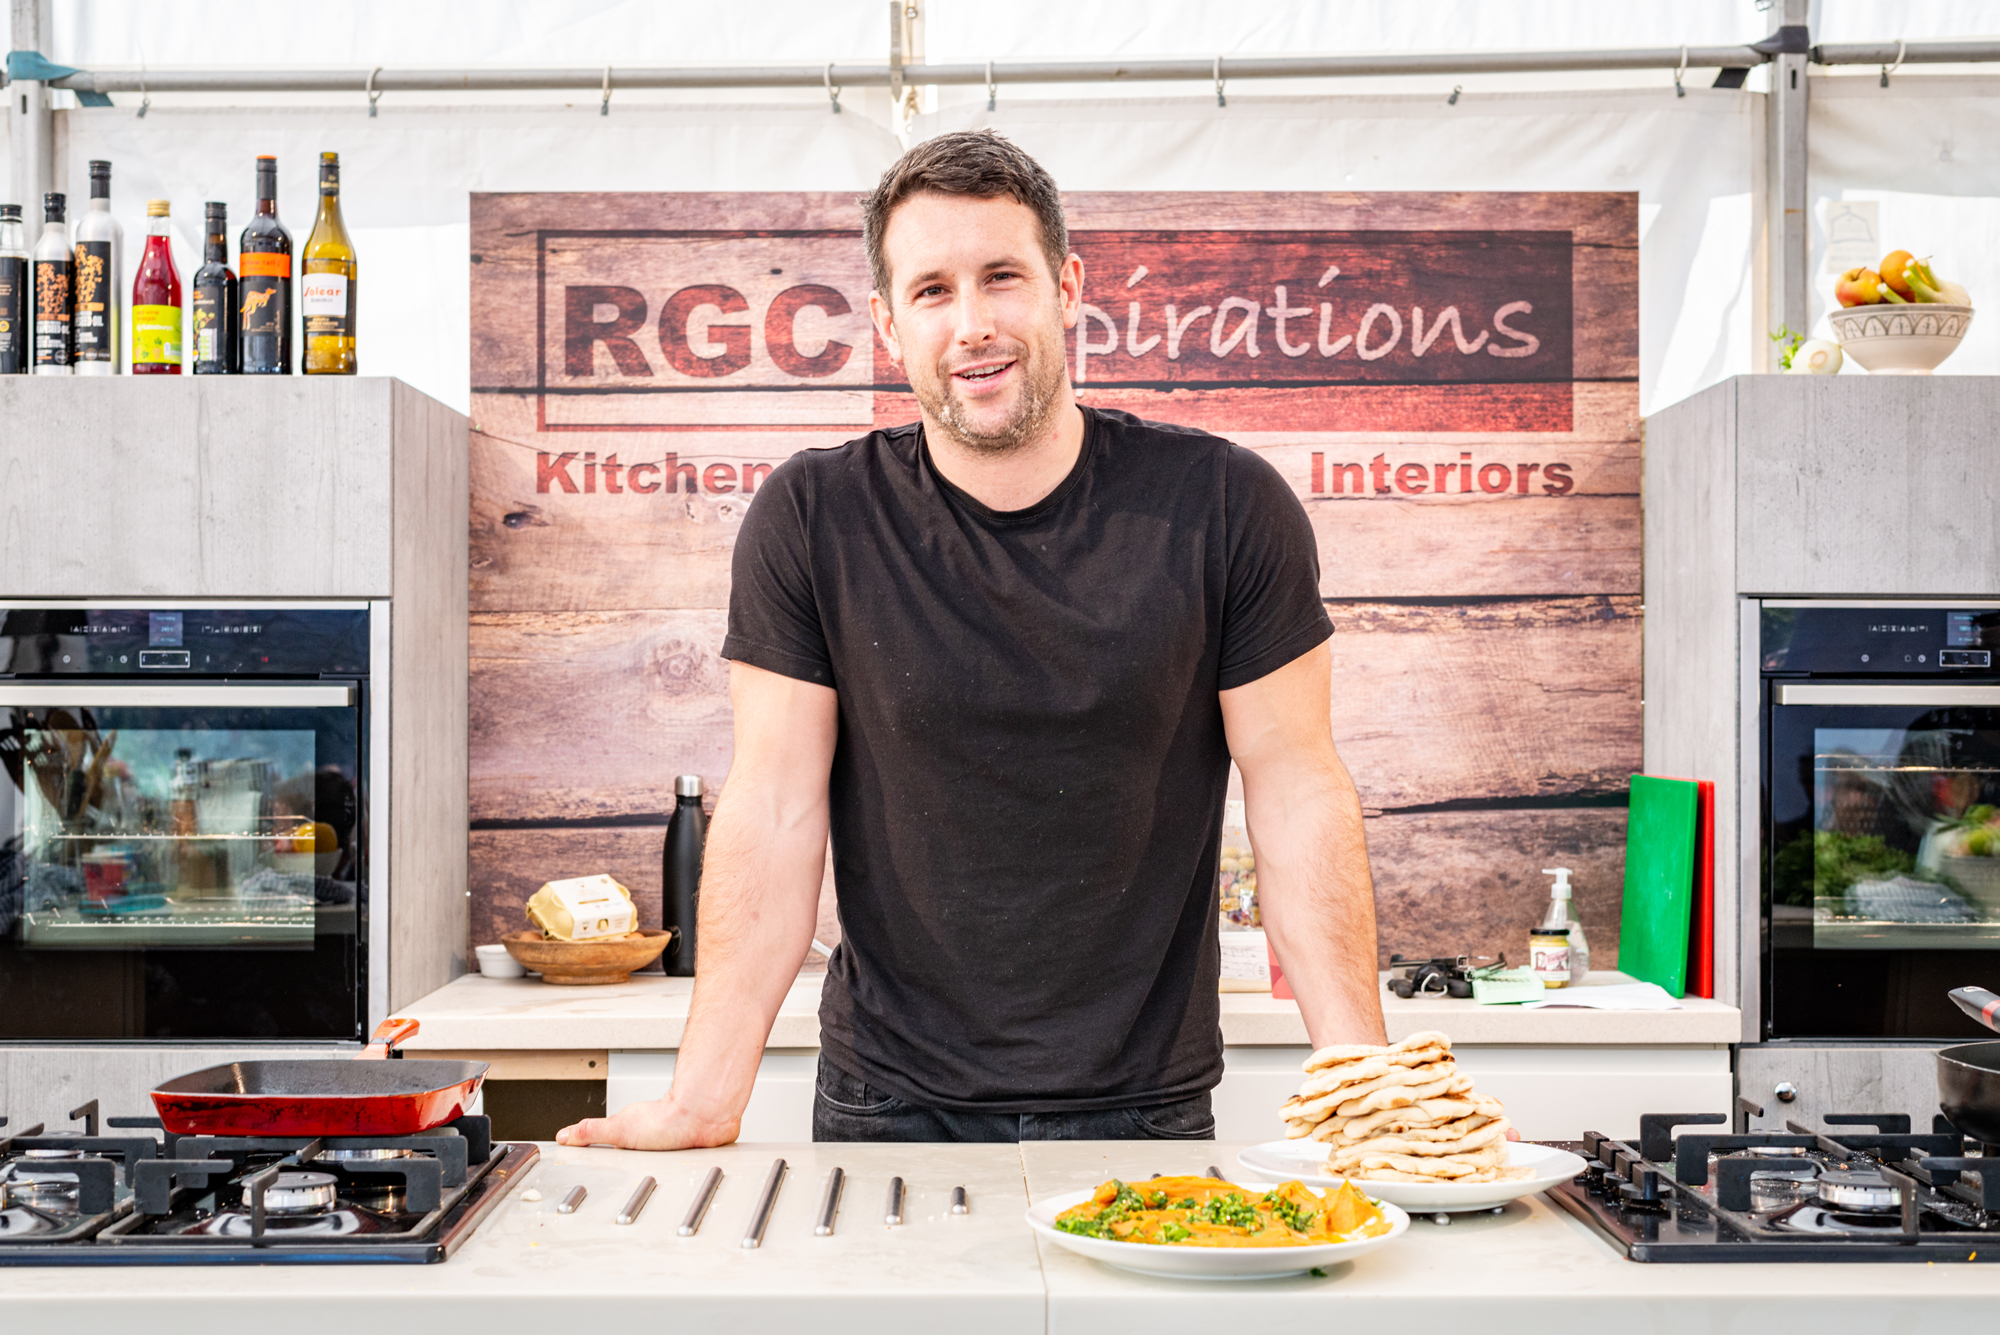 Dartmouth Food Festival 2019 chefs demo tent